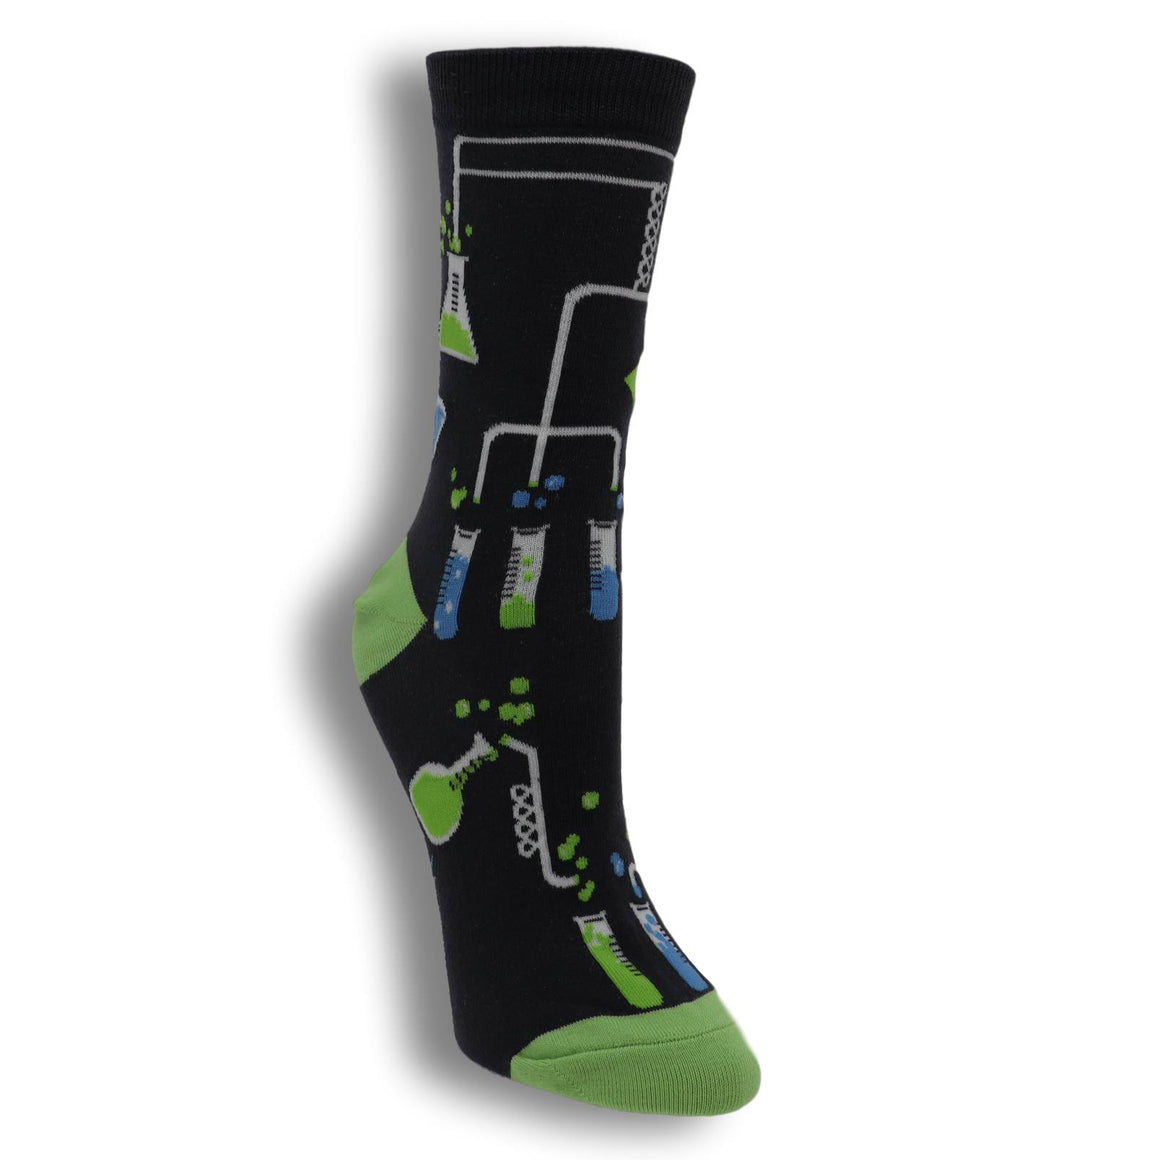 Laboratory Women's Socks by Sock it to Me - The Sock Spot